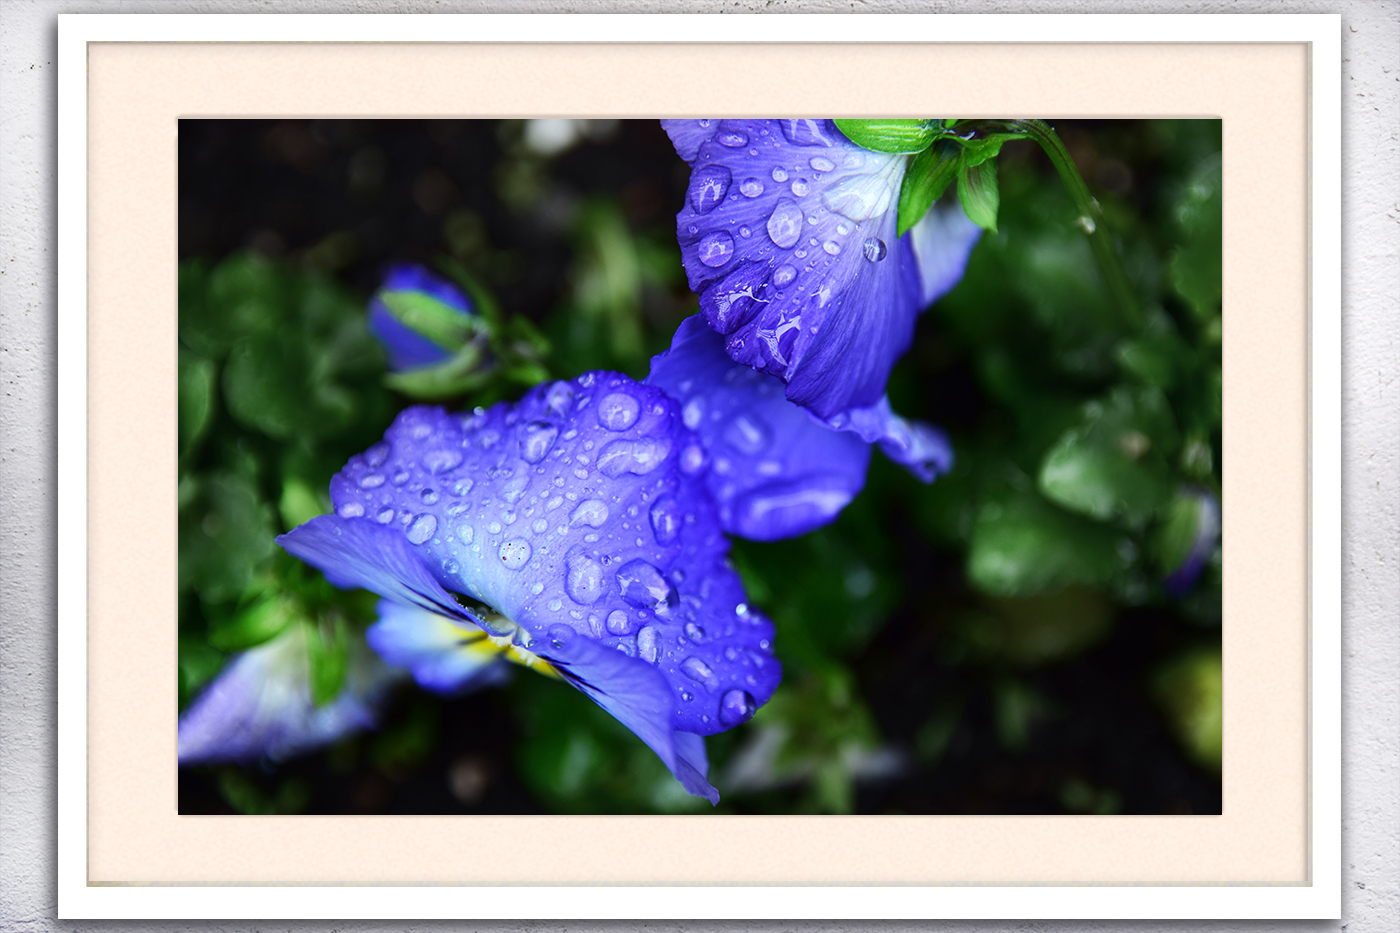 Nature photo, floral photo, spring photo, pansies photo example image 3